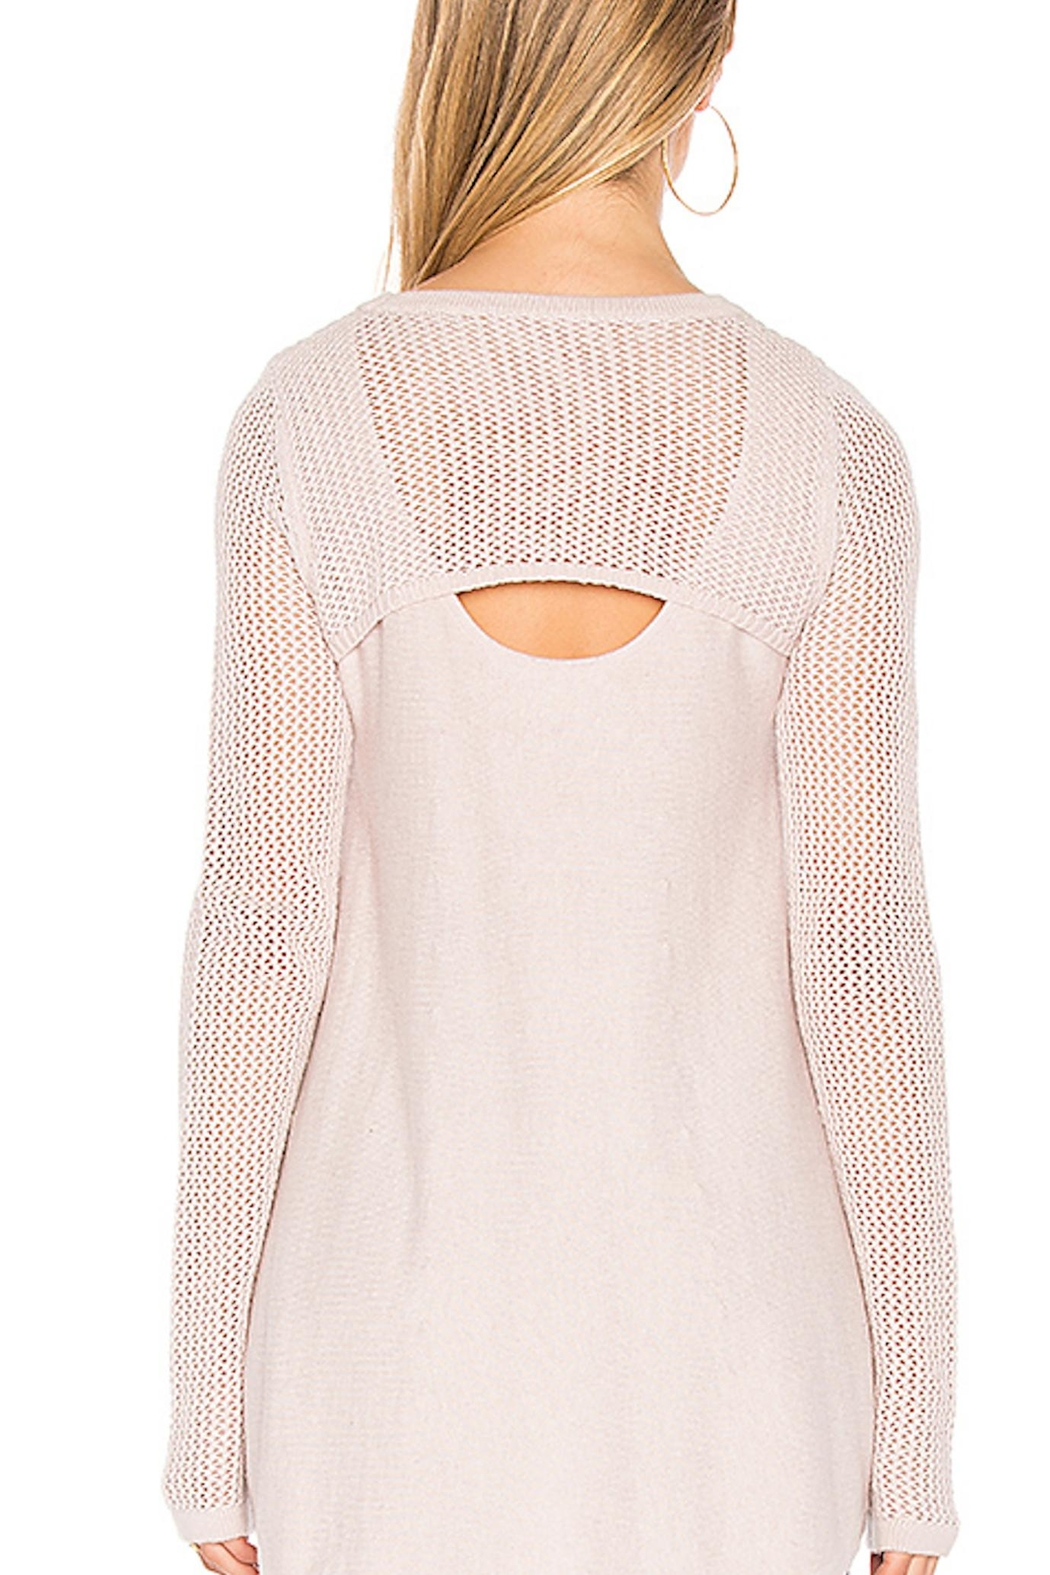 One Grey Day Pink Crochet Sweater - Front Full Image